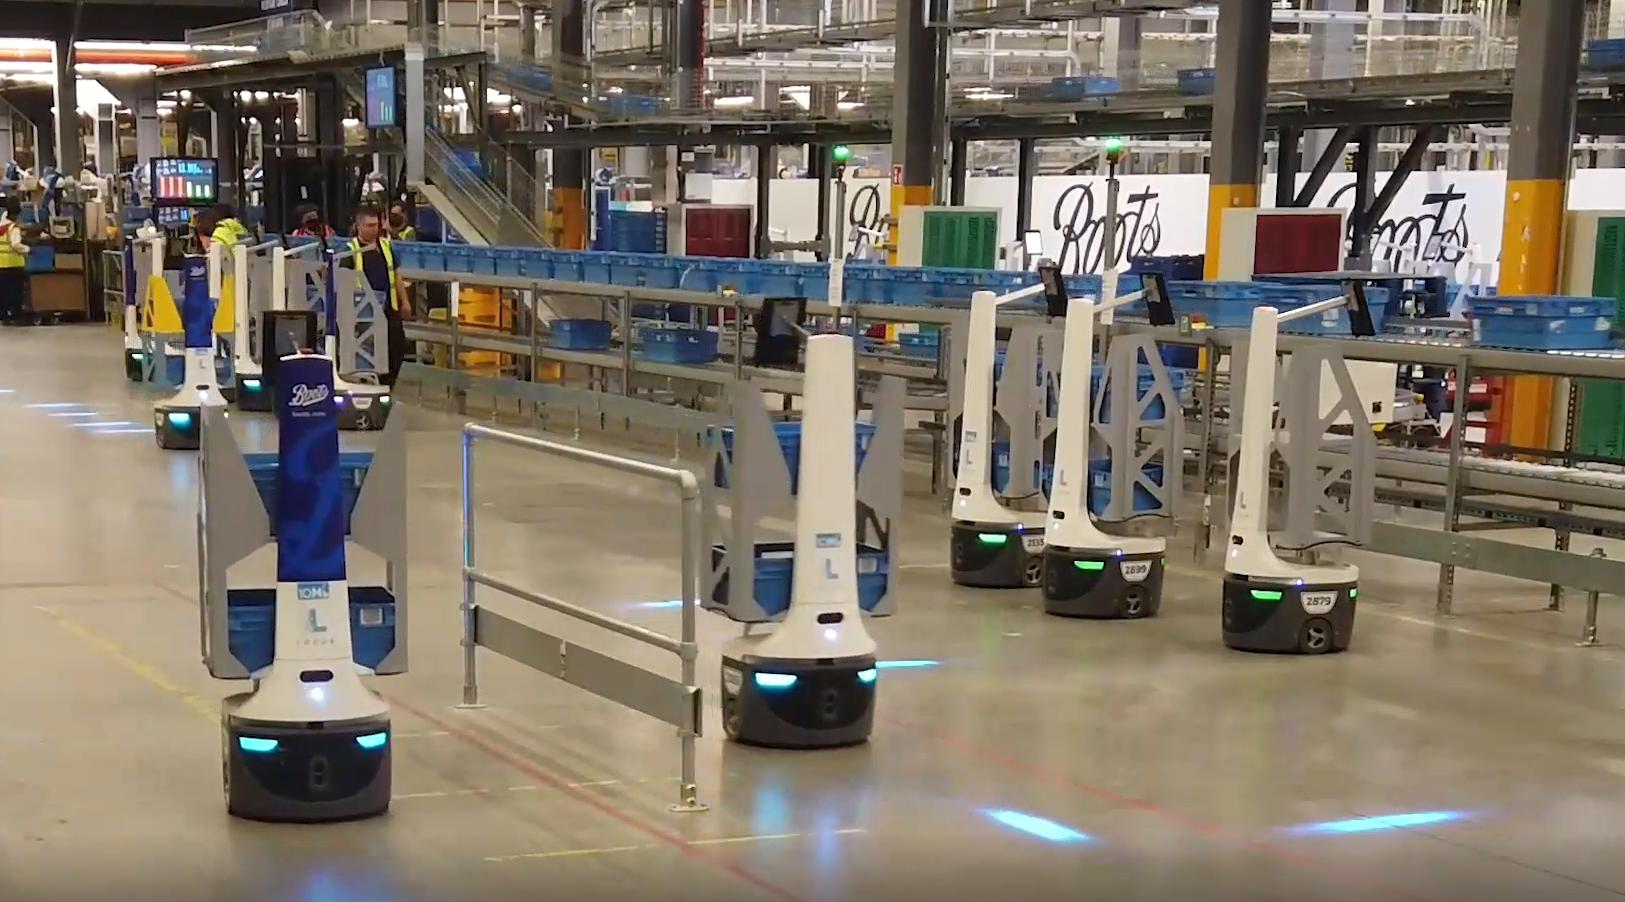 Locus Robotics' bots, called LocusBots, work a warehouse.